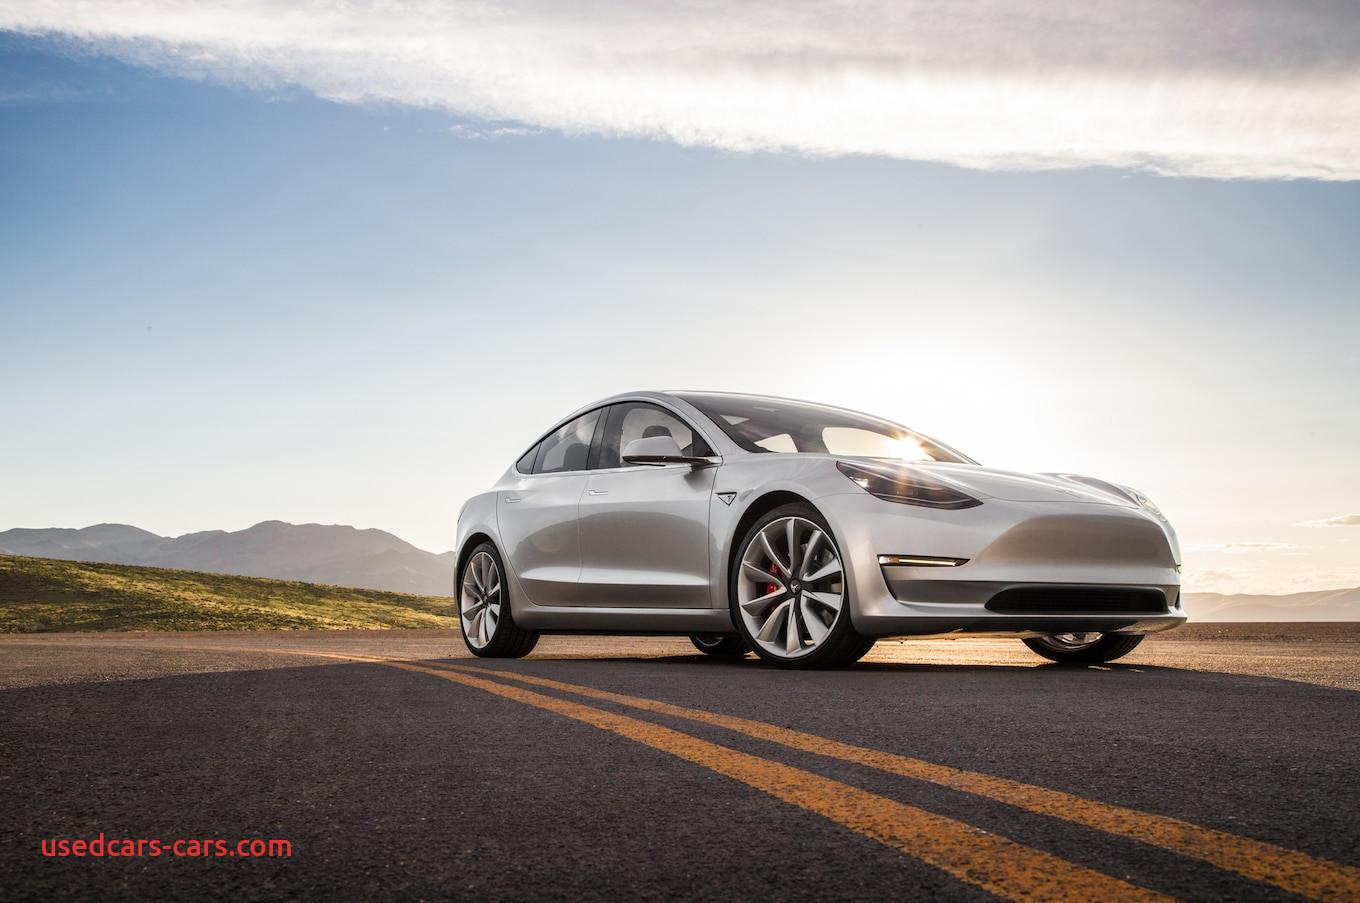 How Much Tesla Model 3 New Tesla Model 3 In Depth Exclusive Photos and Analysis